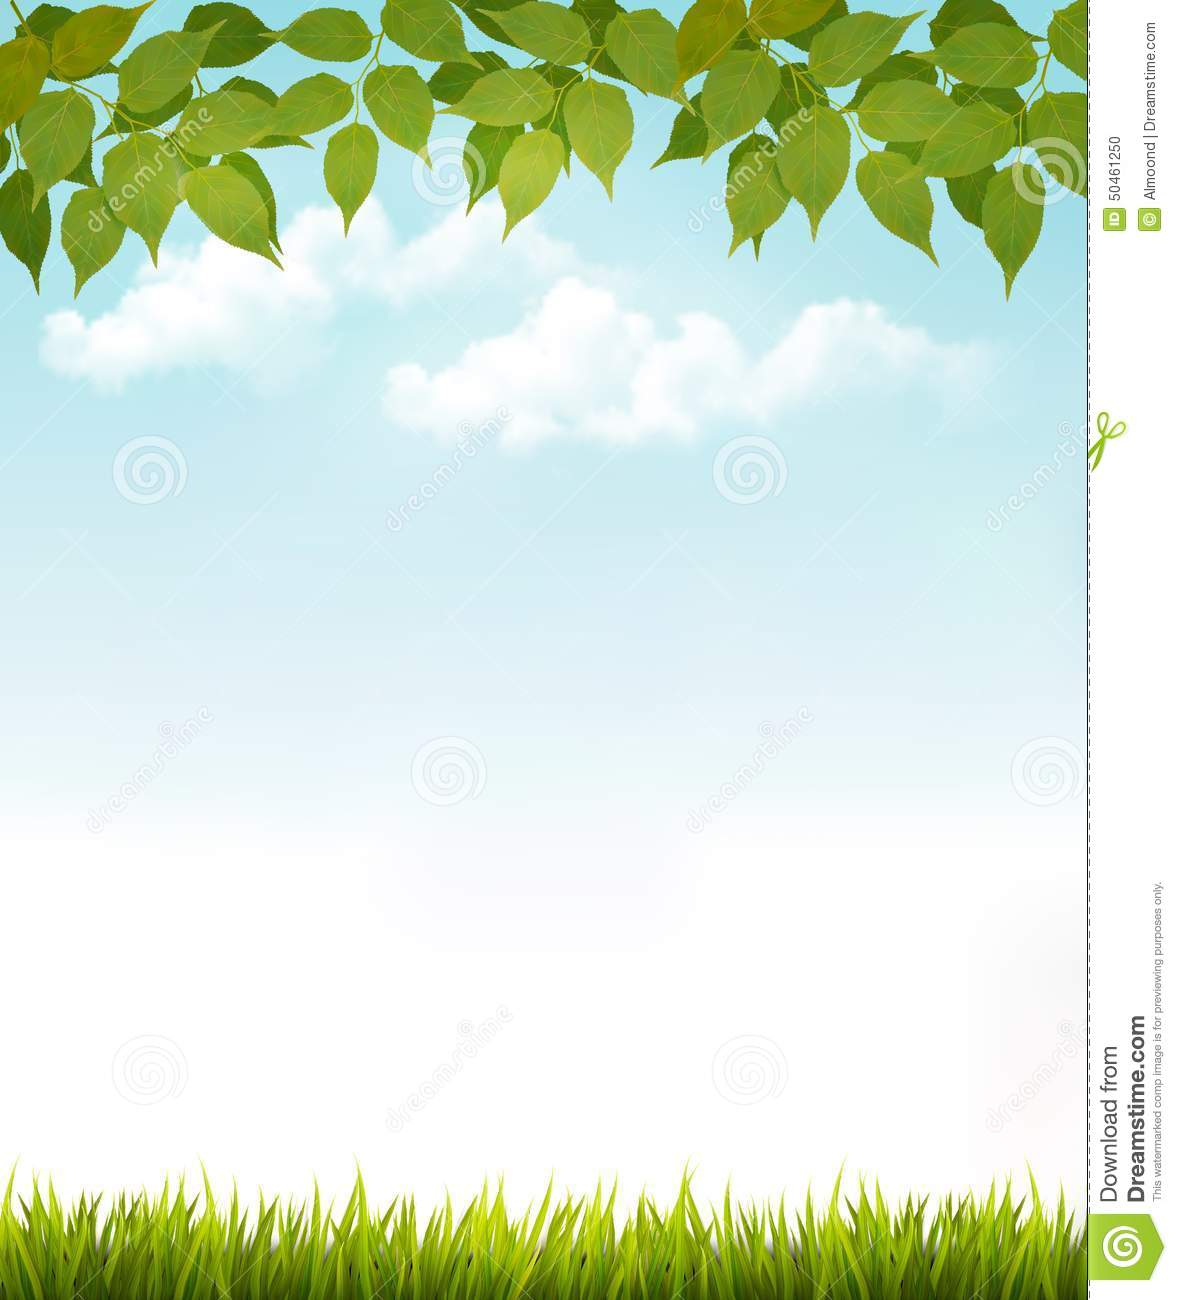 nature background clipart 8 clipart station